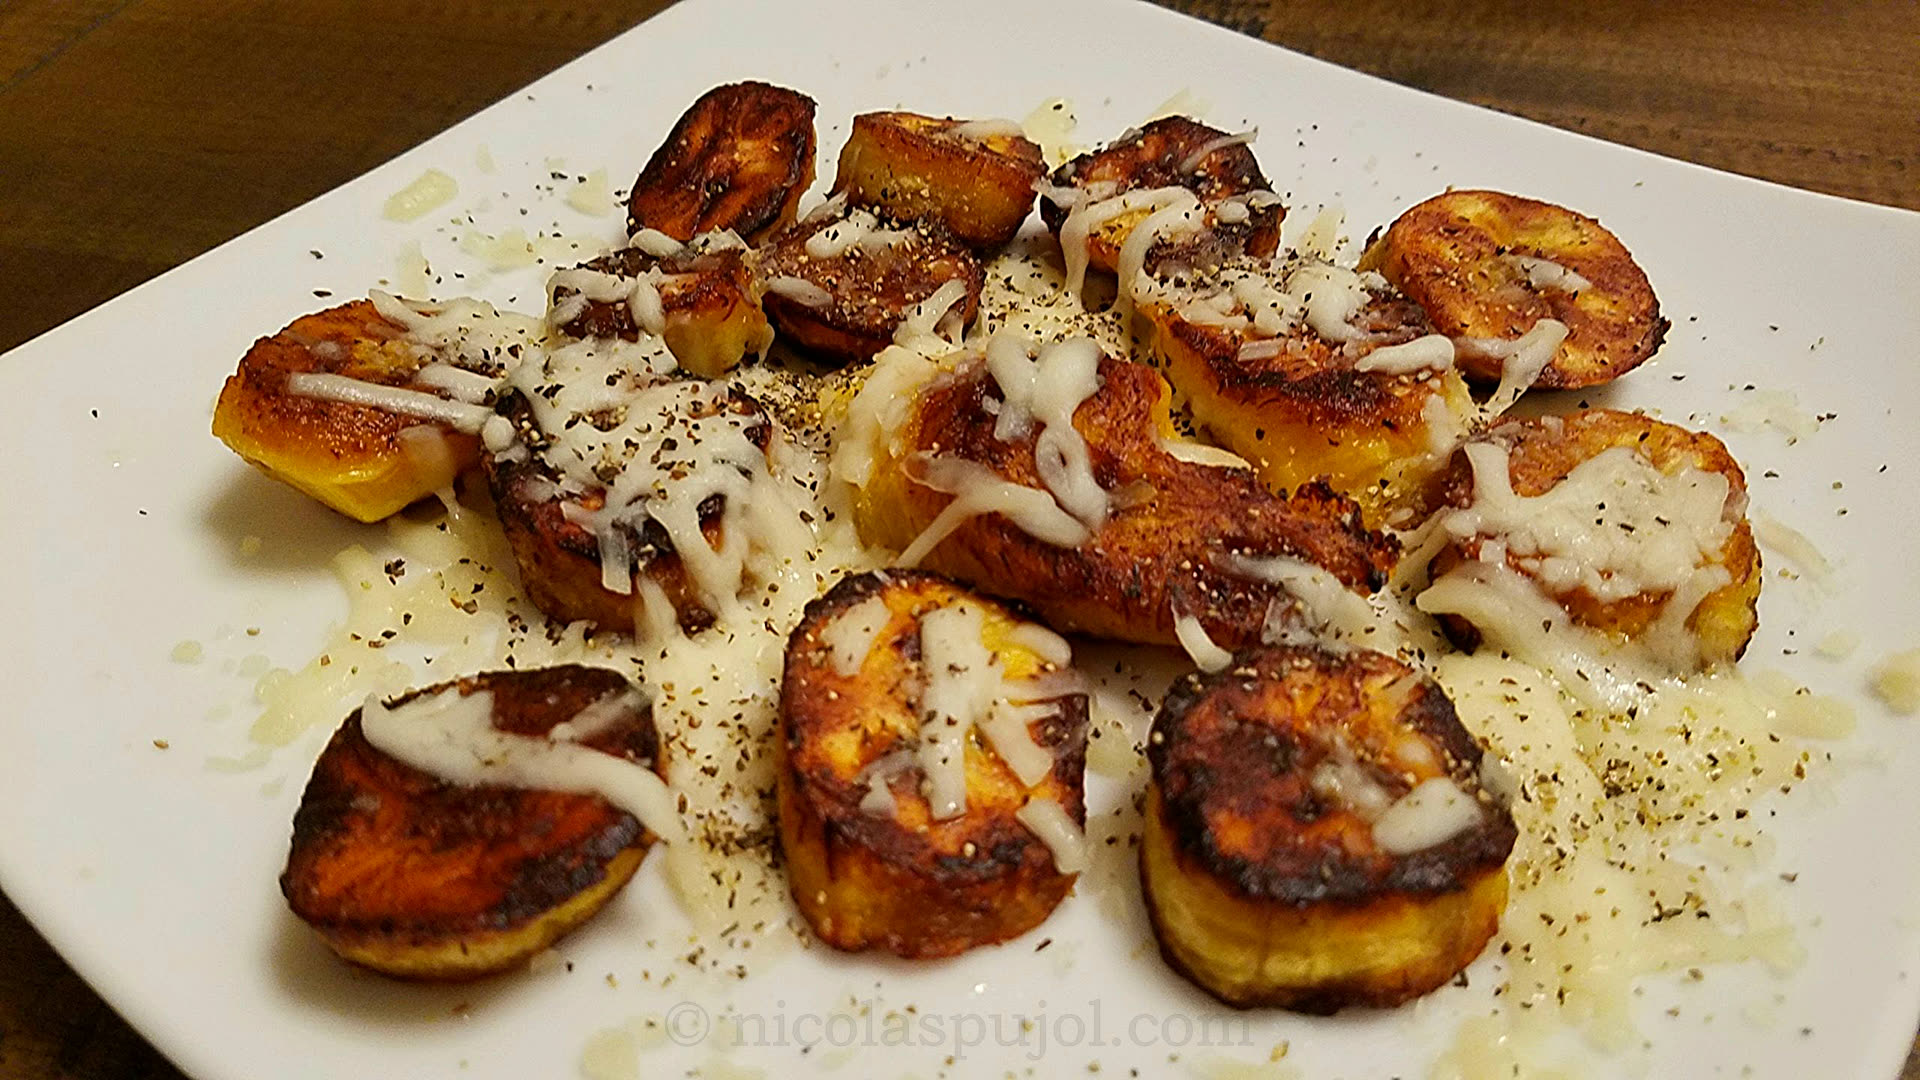 Fried plantains with mozzarella cheese and ground pepper